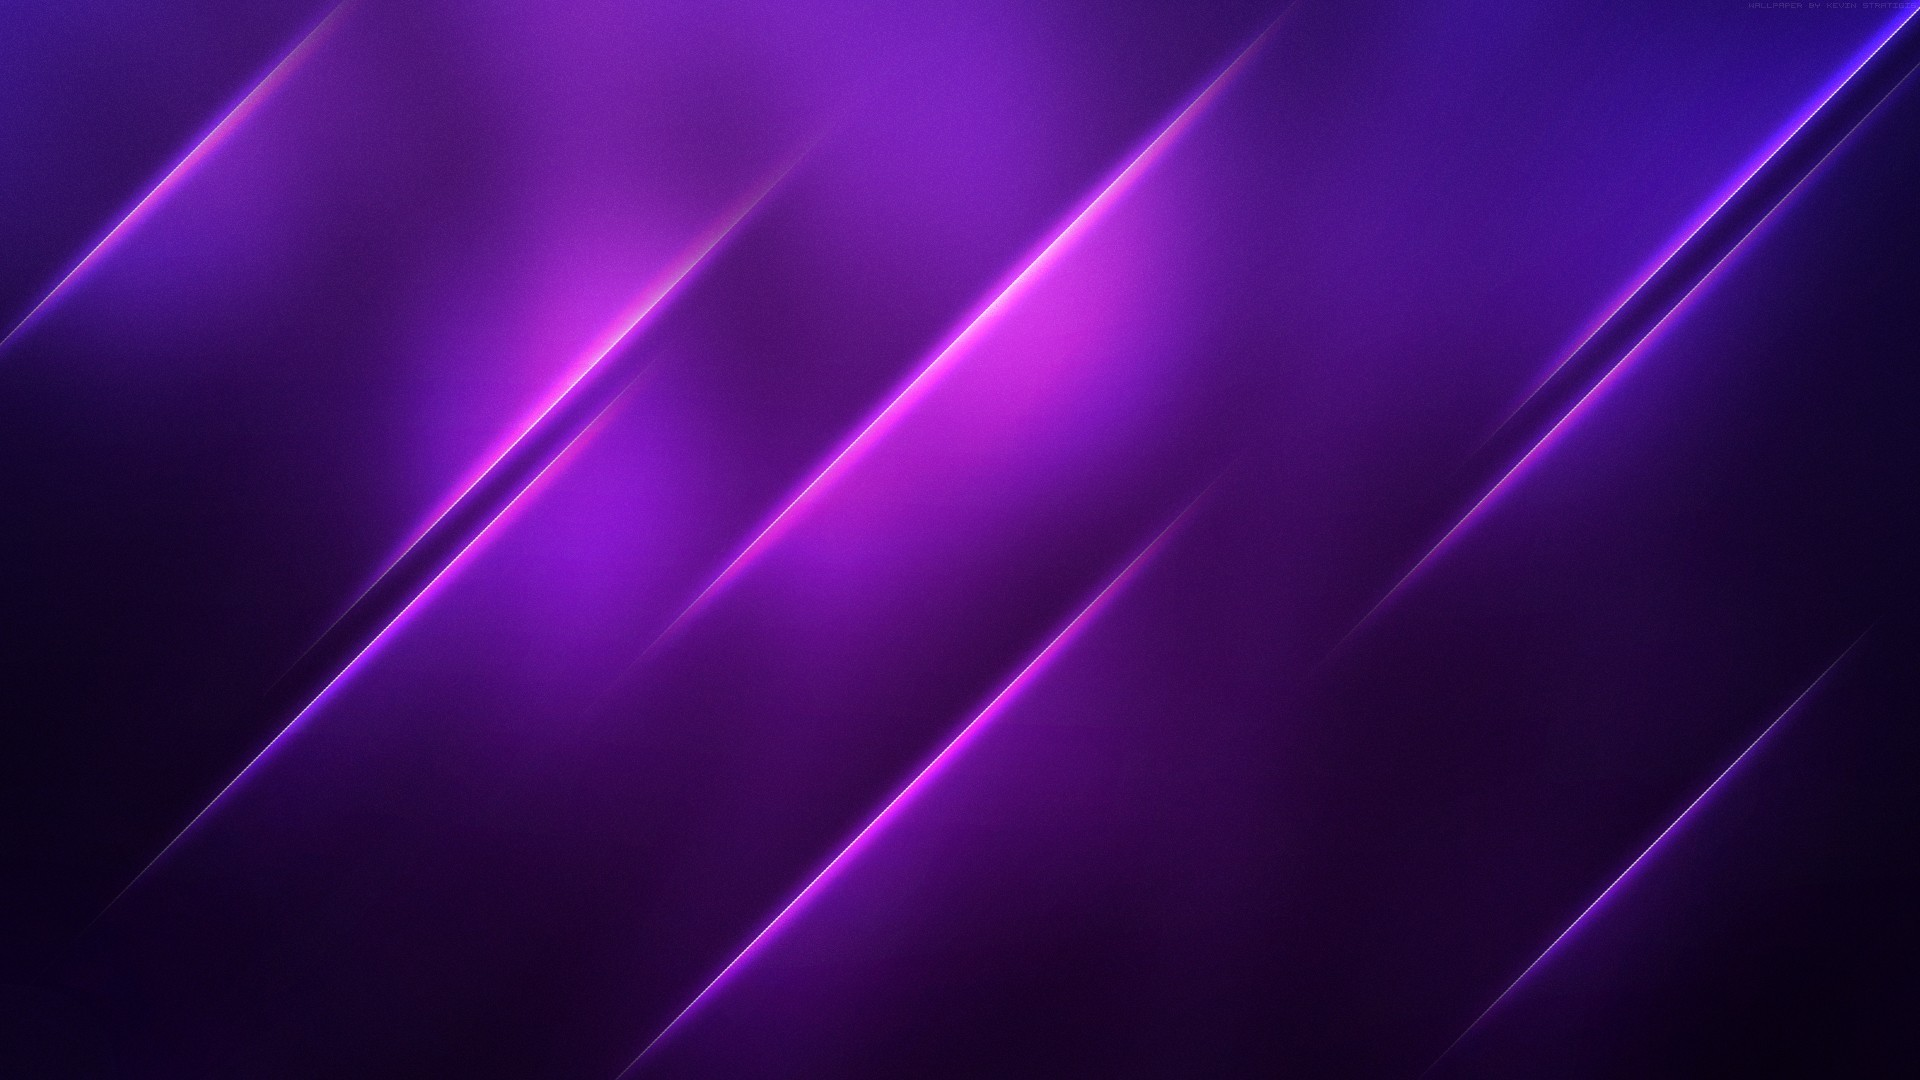 Violet Color Wallpaper Wallpaper High Definition High Quality